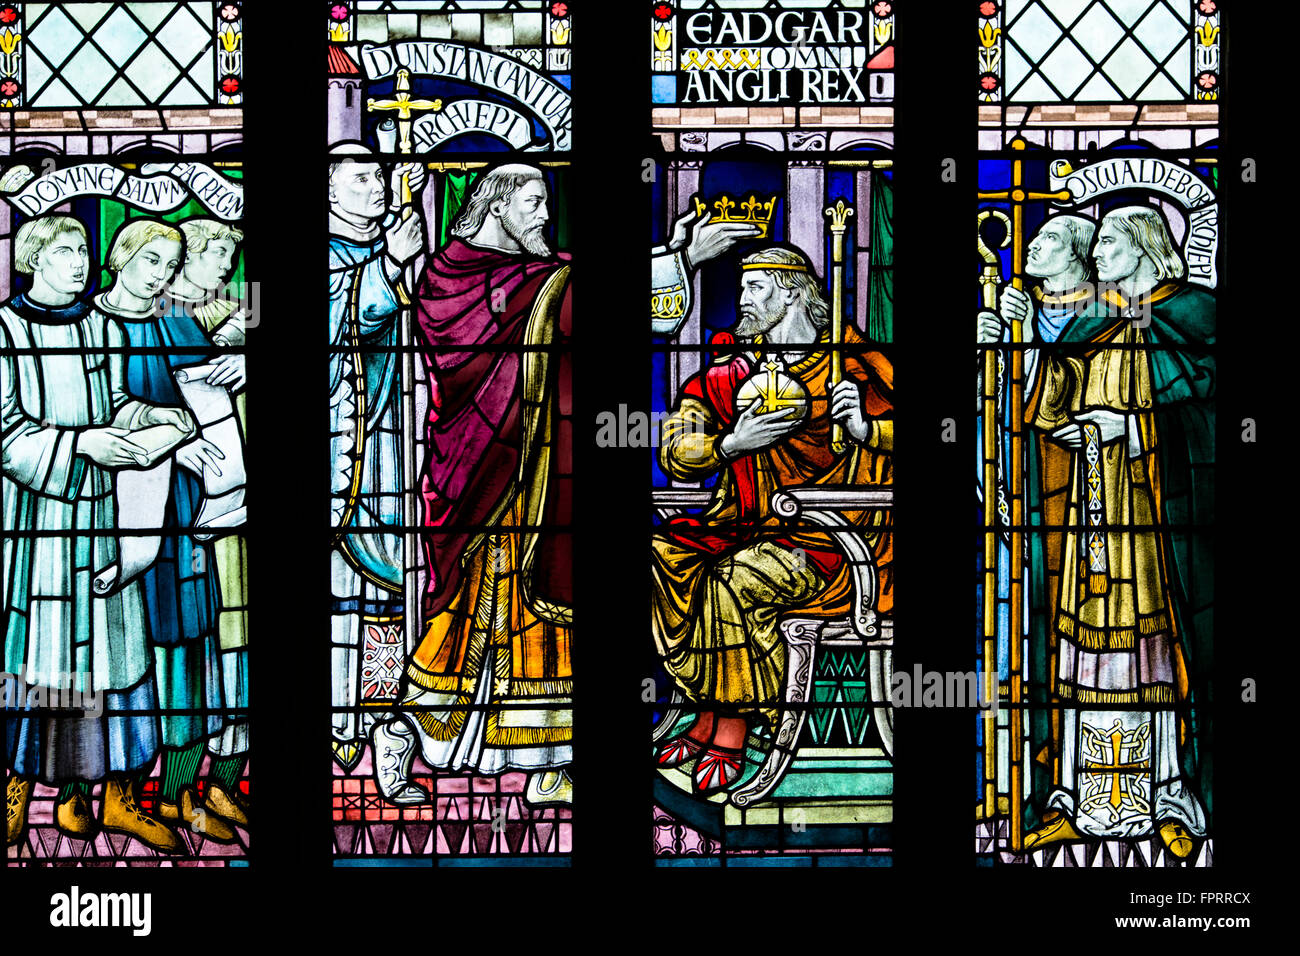 19th century stained glass window showing the coronation of King Edgar in Bath Abbey - Stock Image